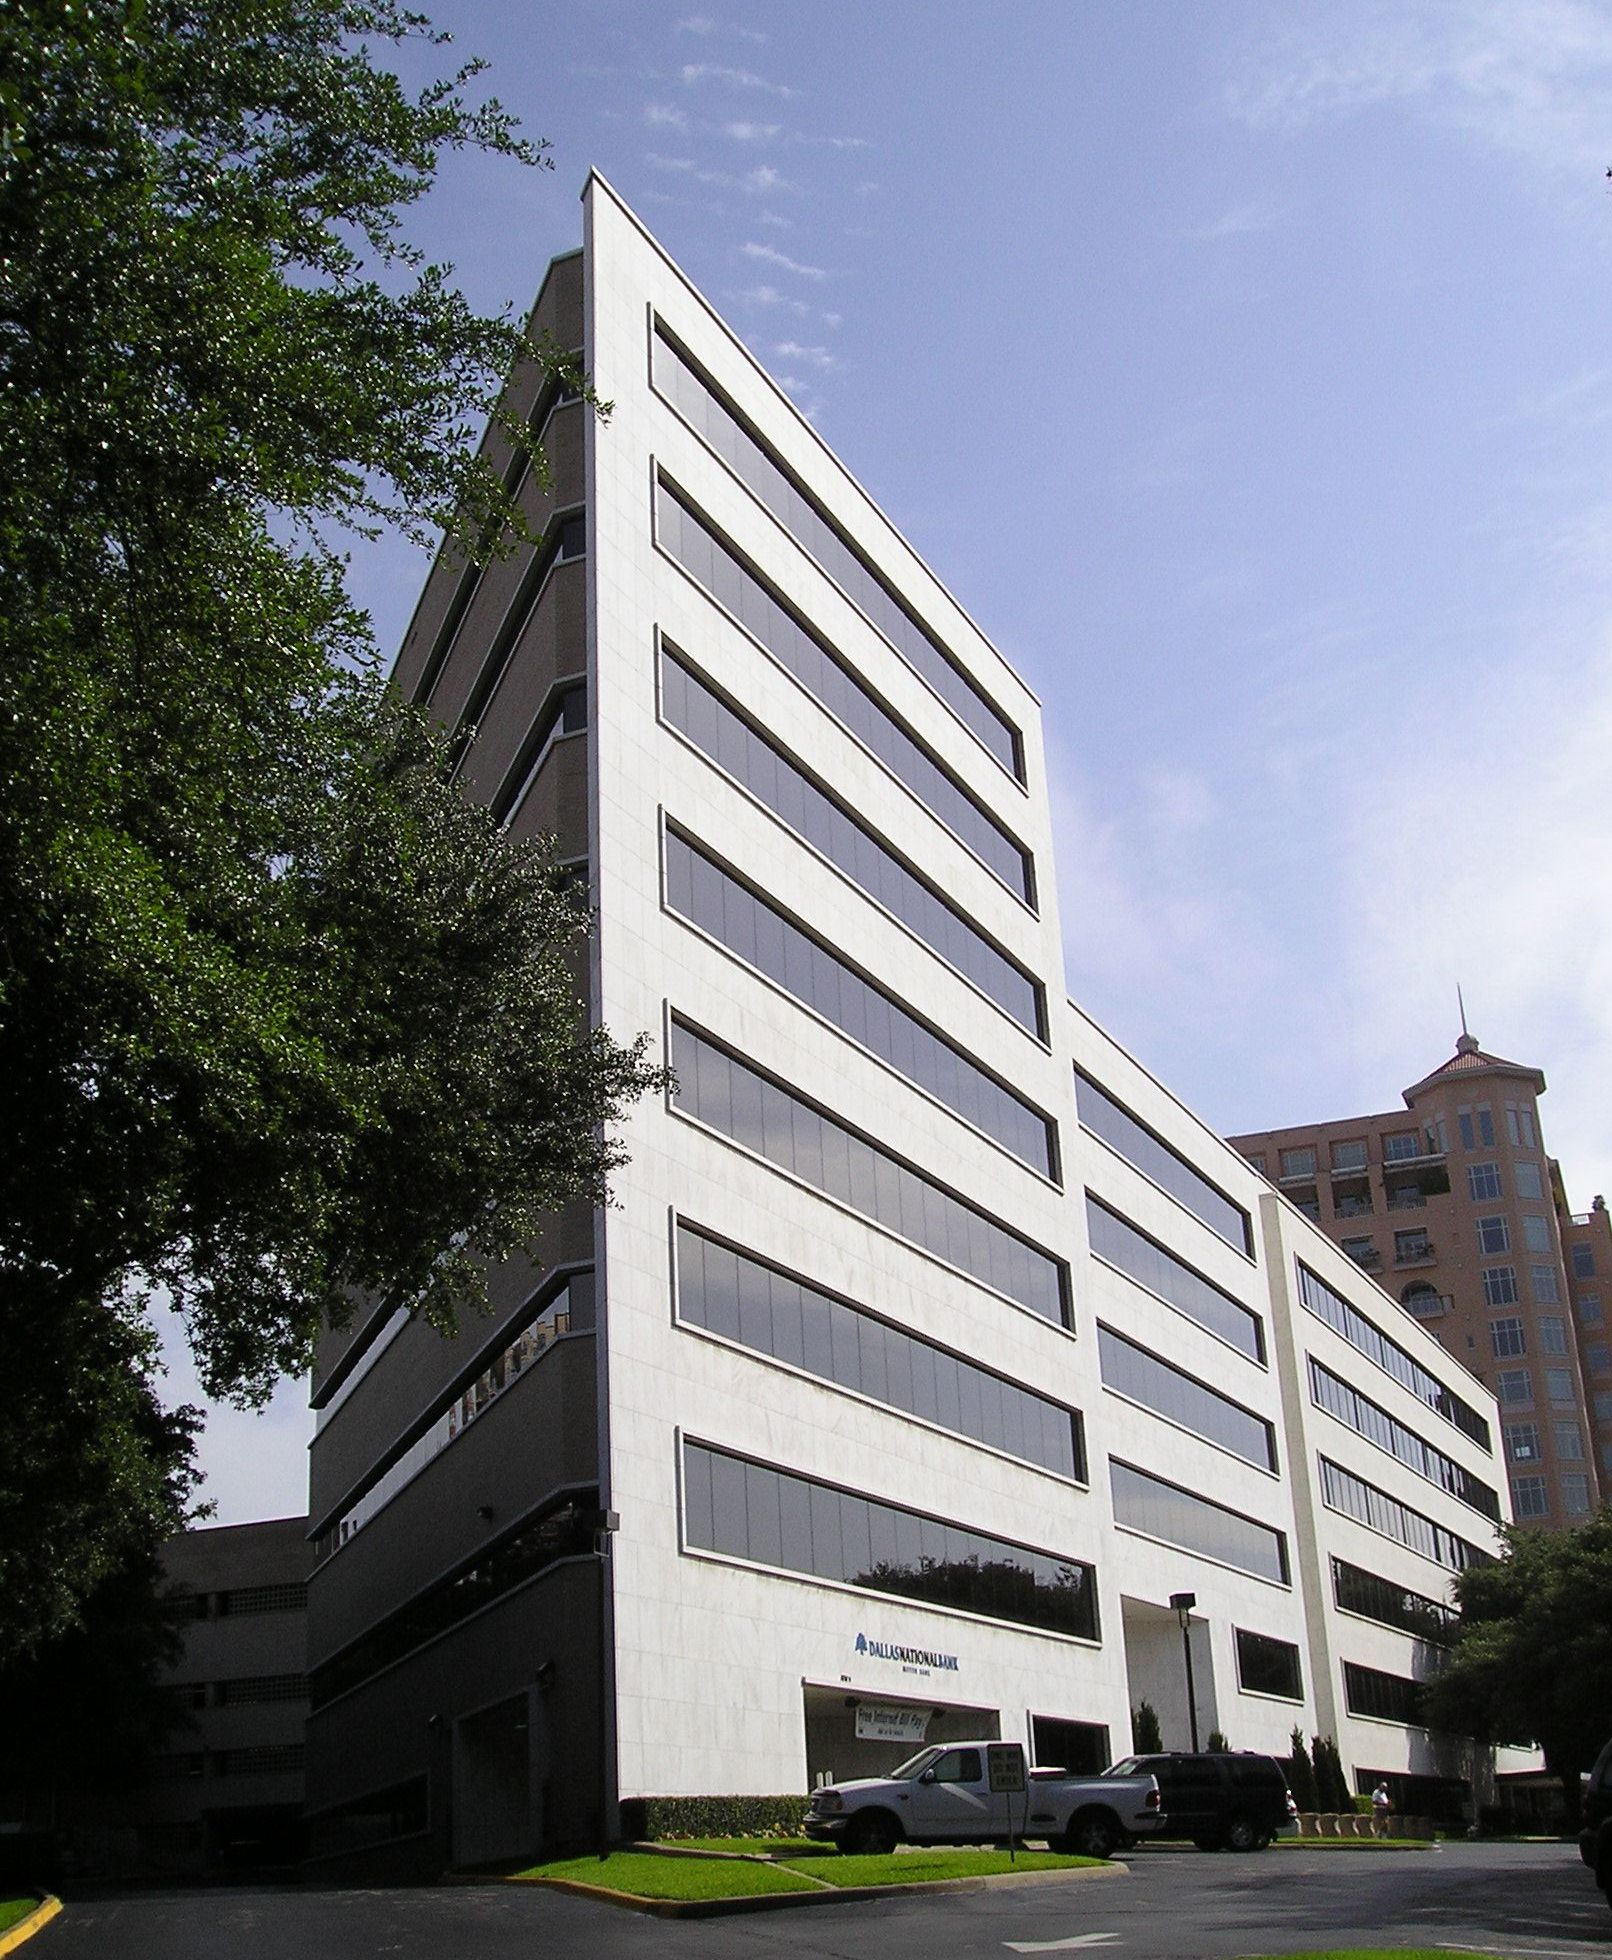 Prescott Realty acquired the Republic Insurance buildings in 2014 and is tearing them down to build new high-rises.